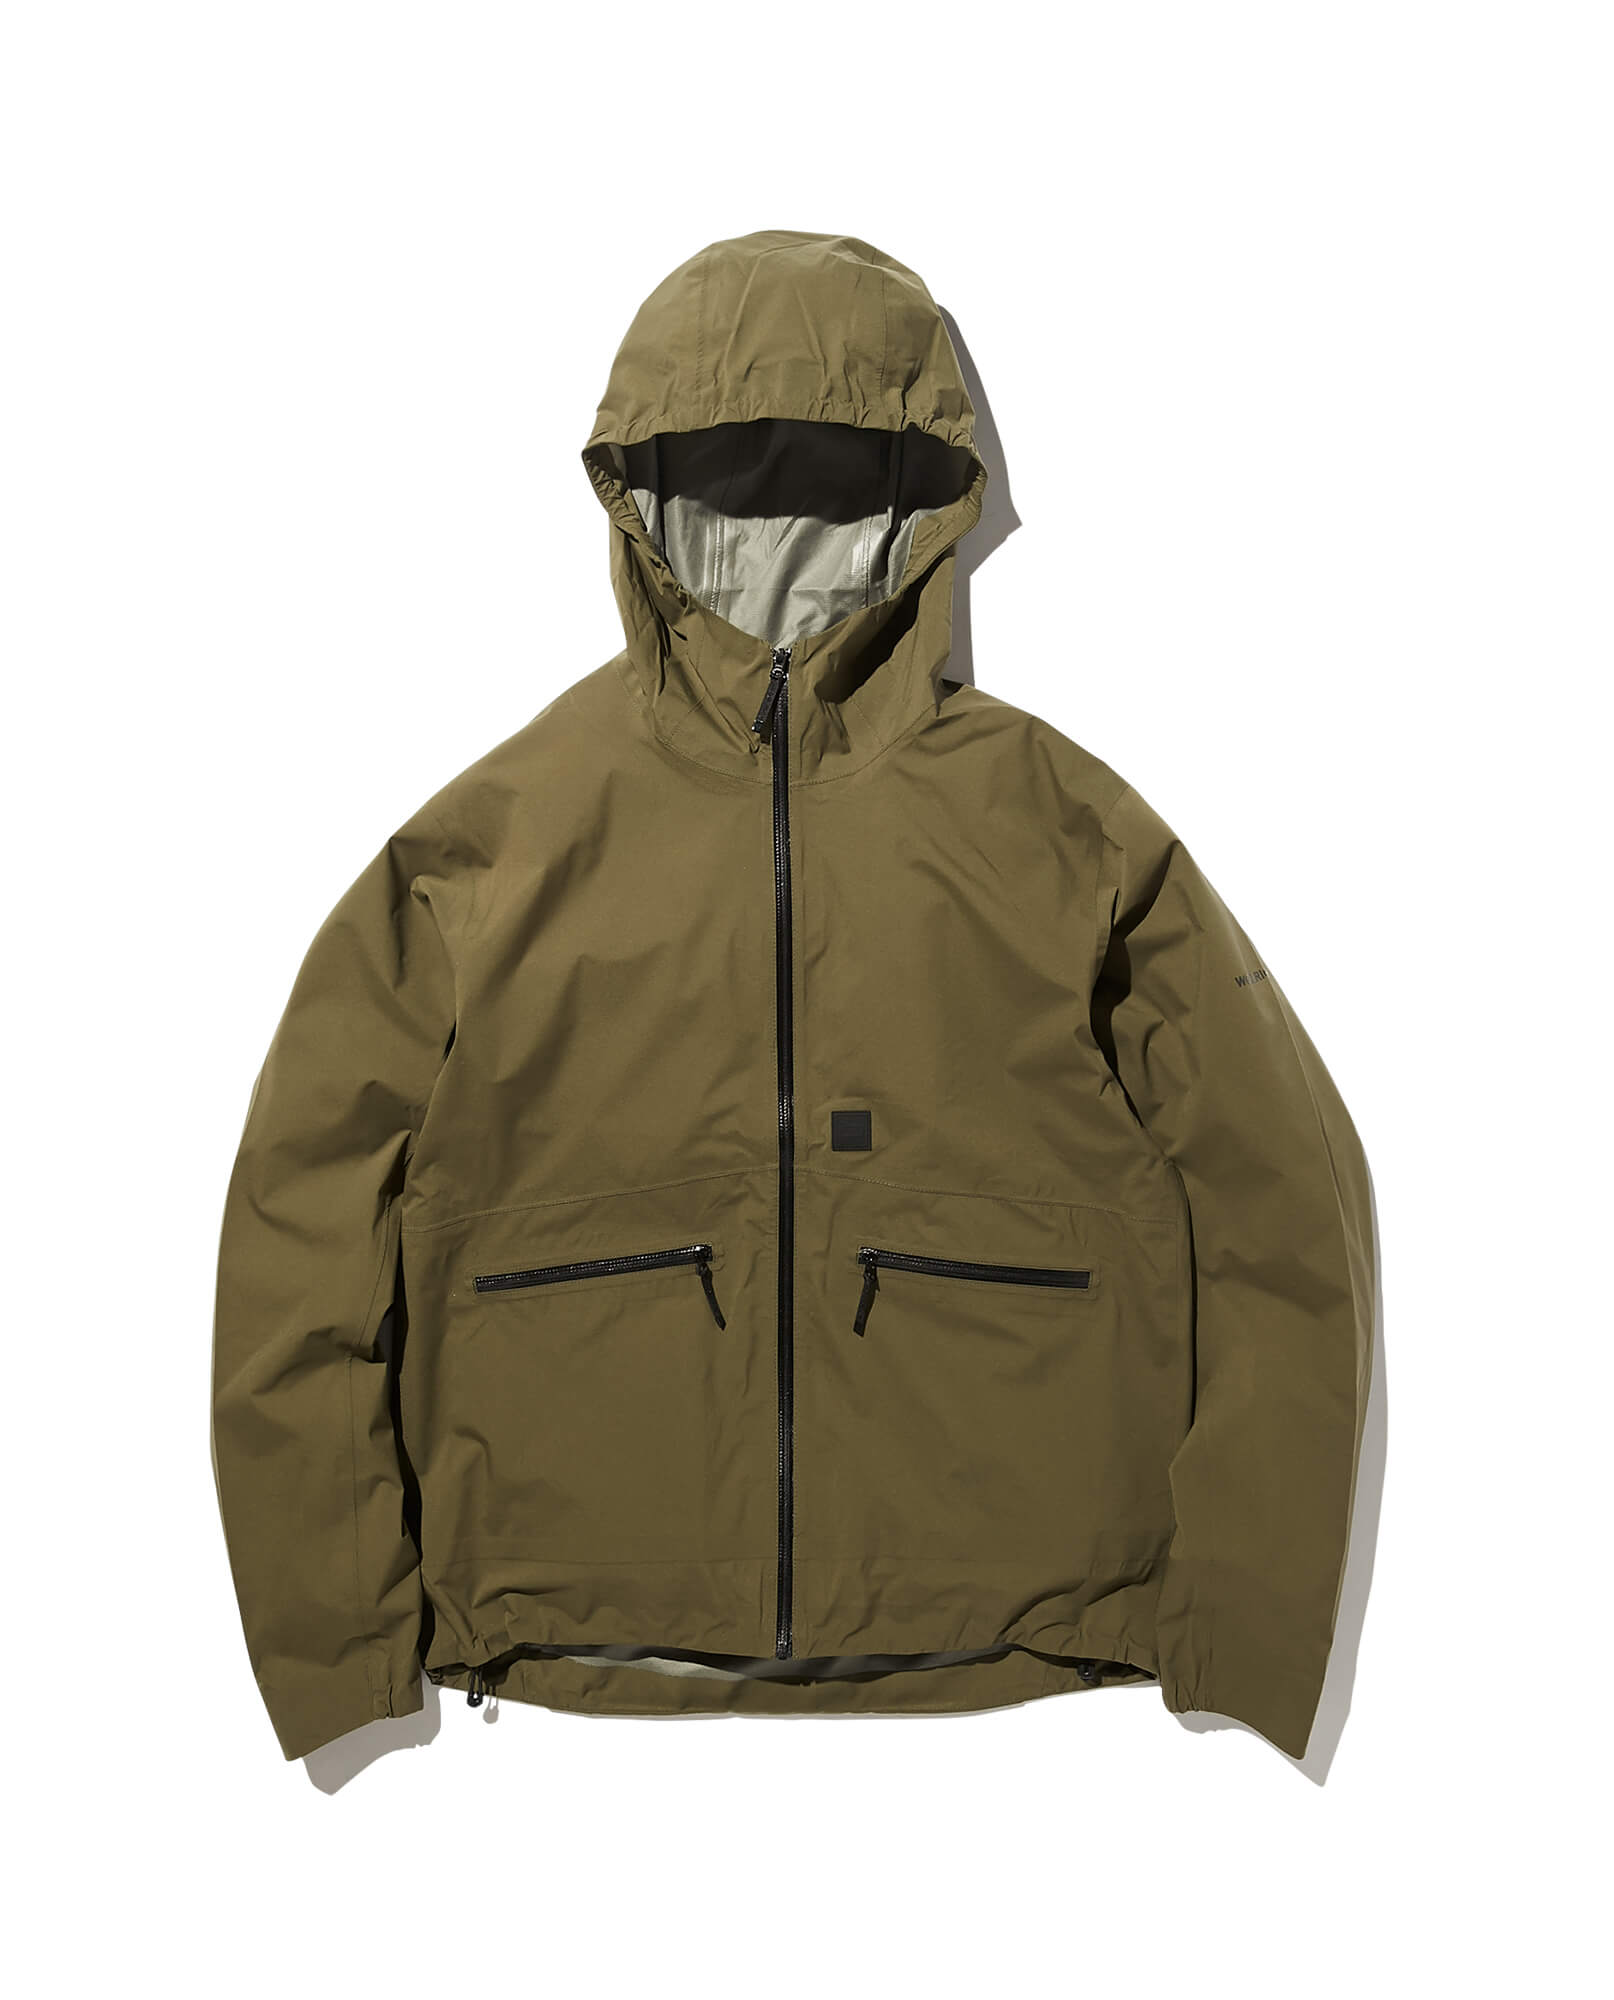 BOUNDLESS TRAIL JACKET